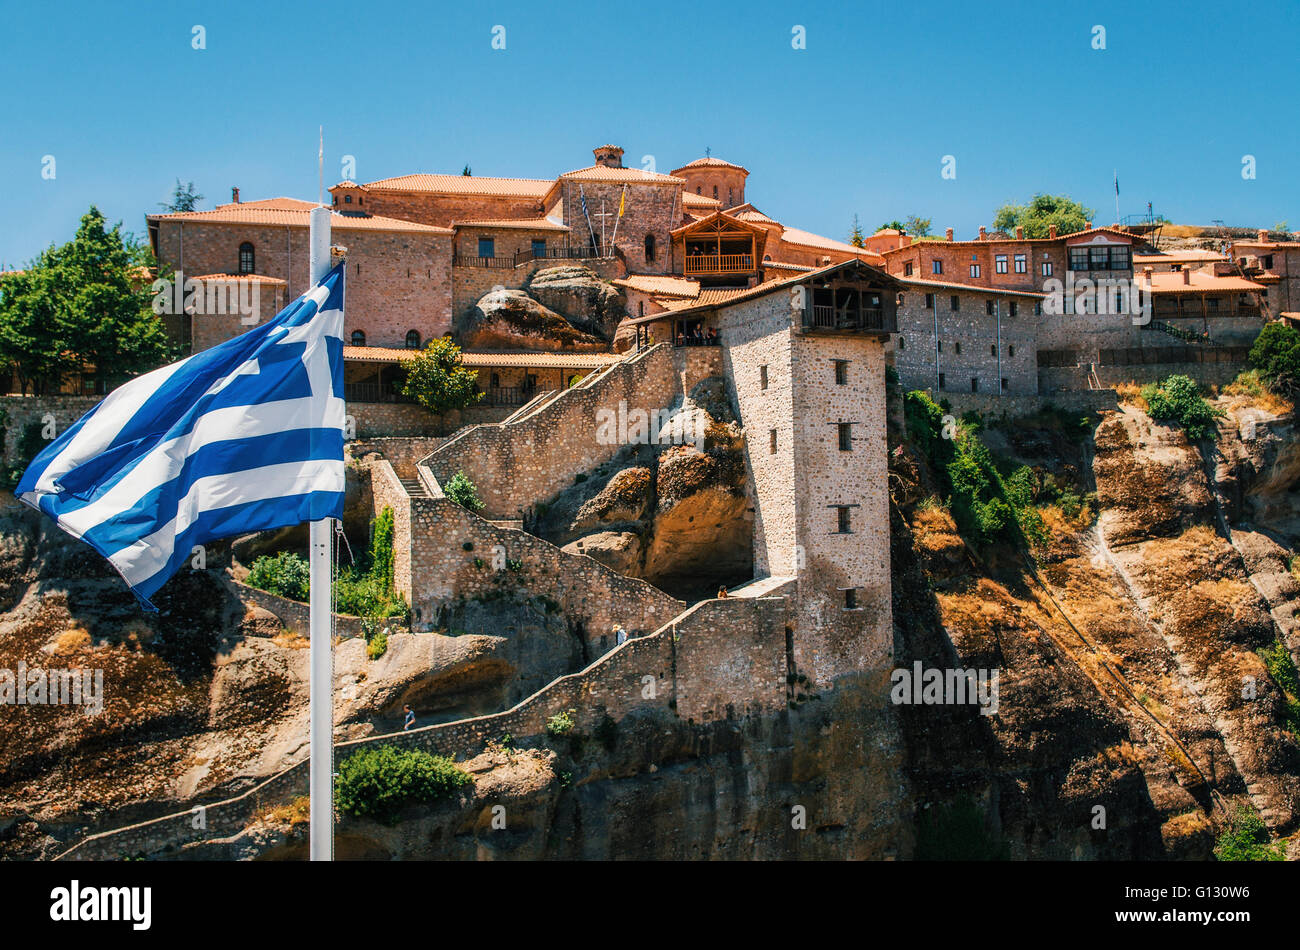 Greek flag in front of The Holy Monastery of Great Meteoron in Meteora - complex of Orthodox monasteries on mountains, - Stock Image